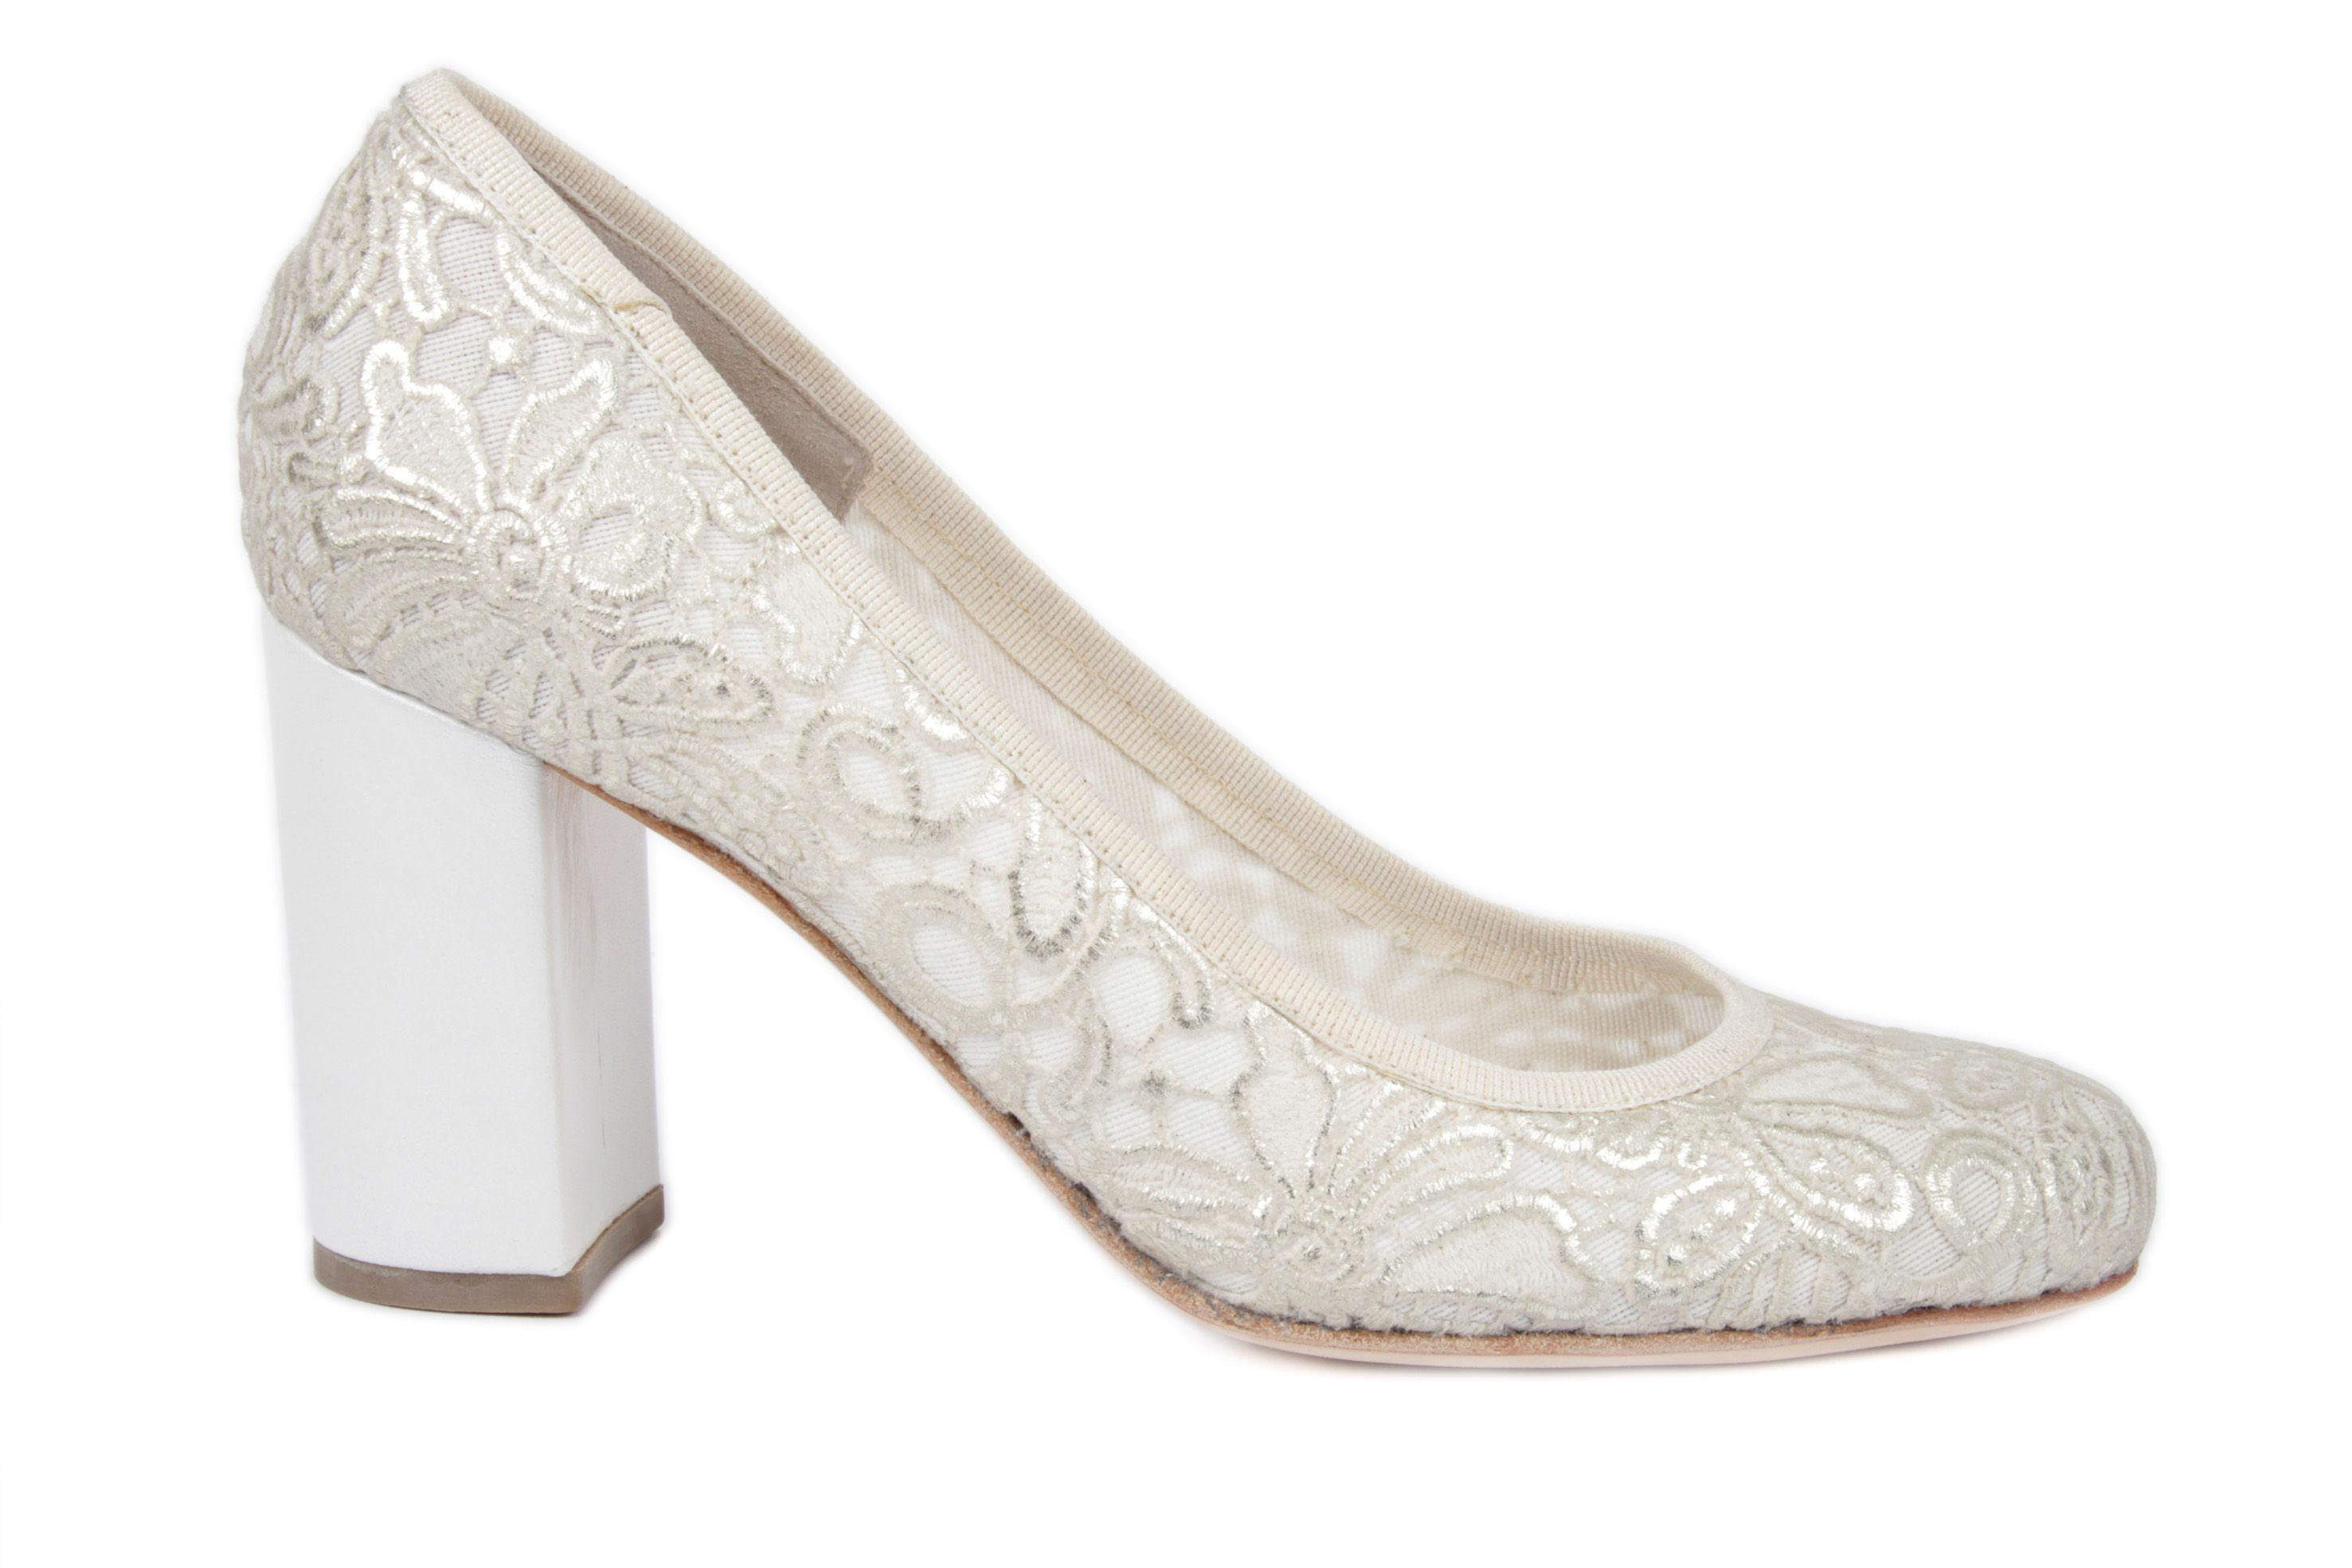 Model Passione with embroidery high heel 7.5cm